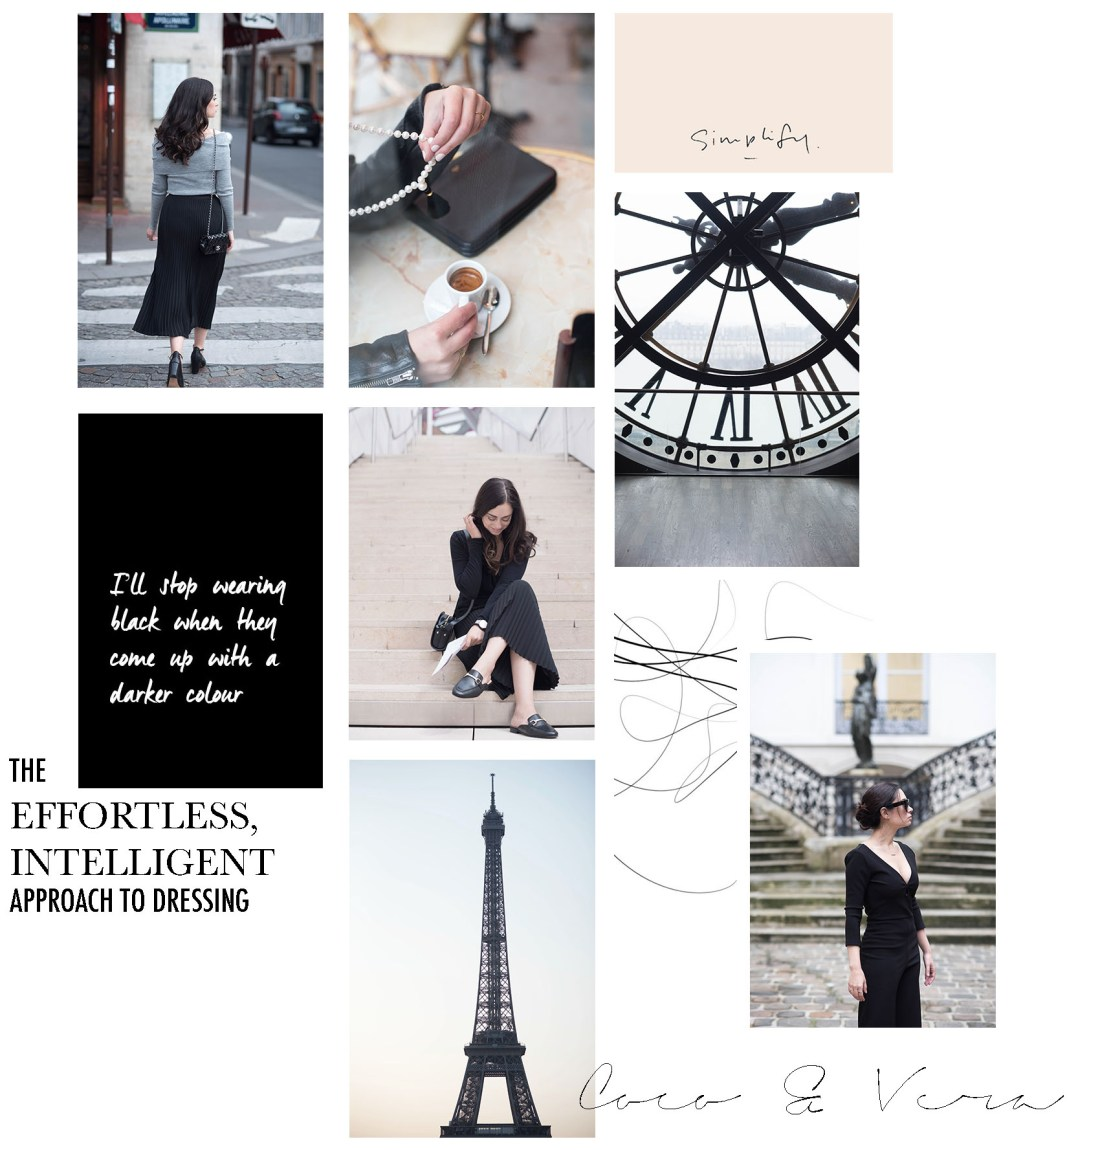 Coco & Vera, a Winnipeg- and Paris-based fashion blog by Cee Fardoe